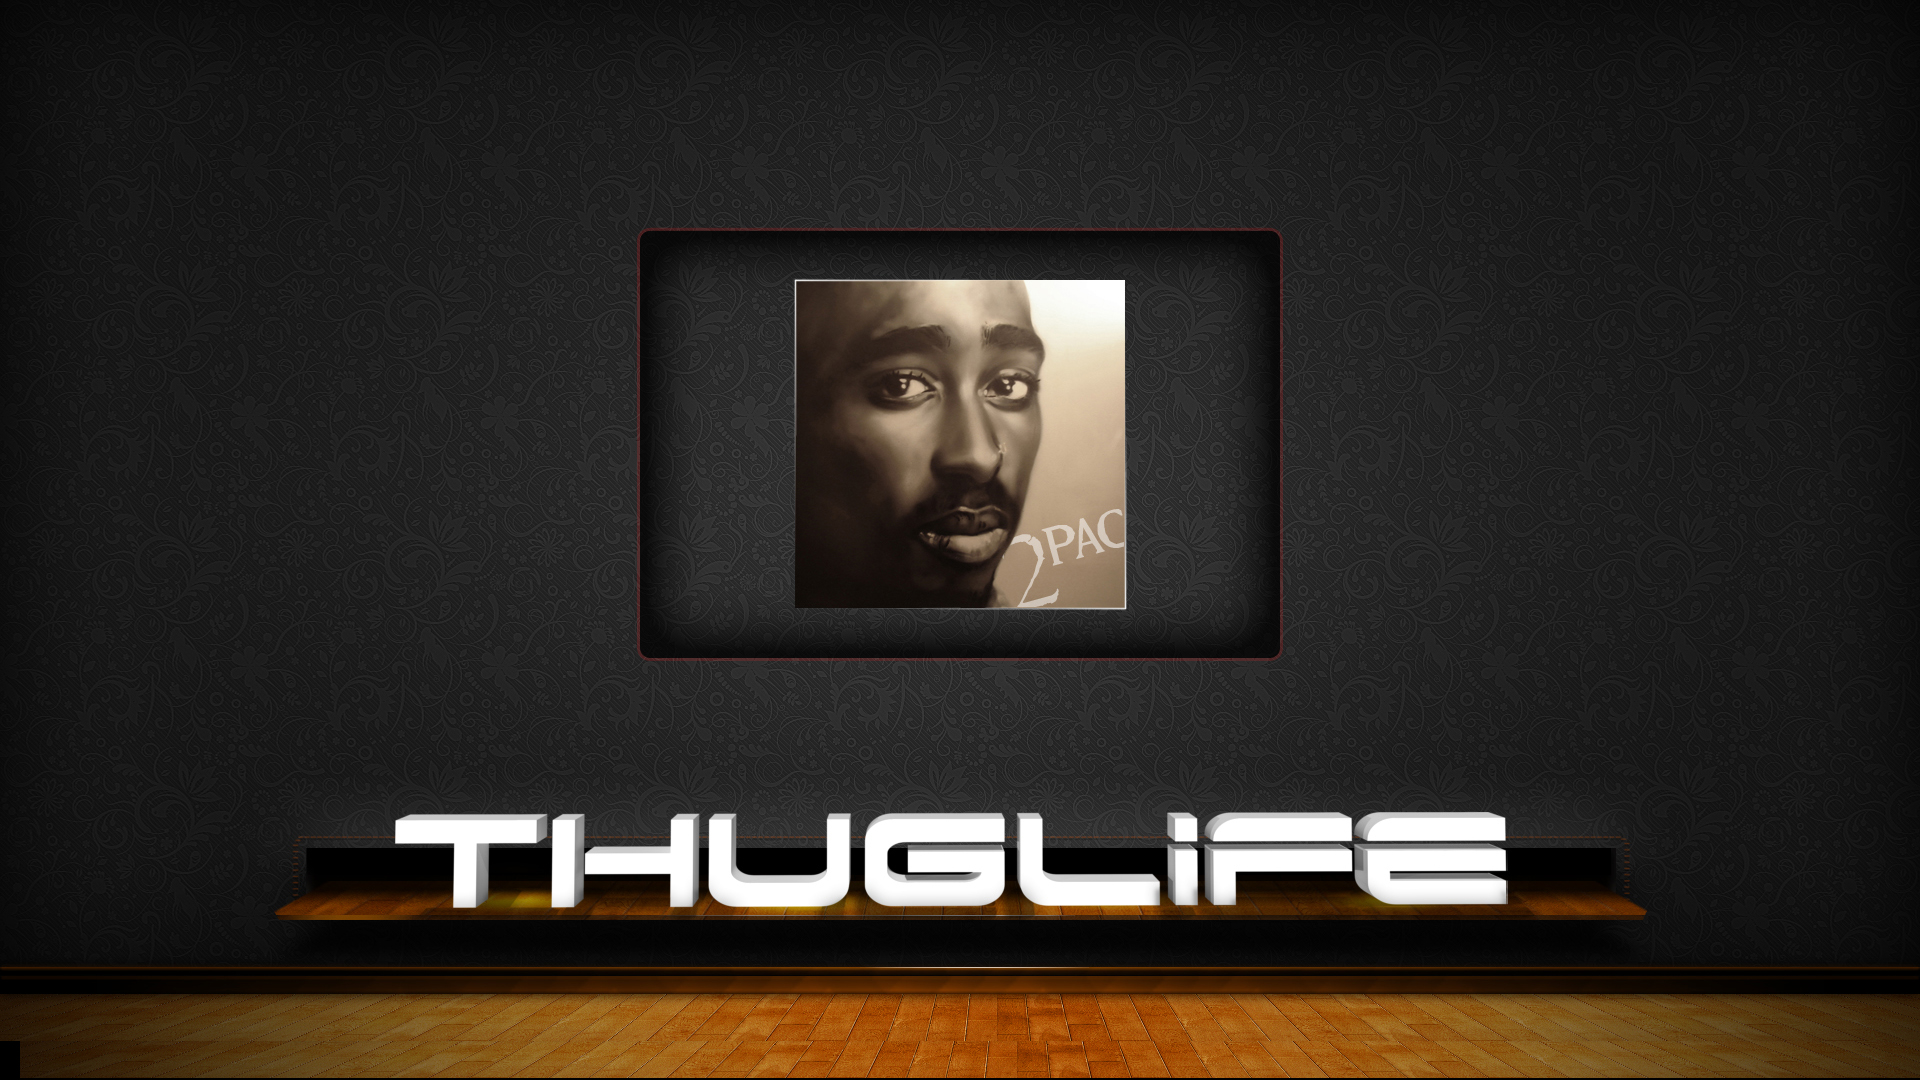 2pac Thug Life Wallpaper 2pac Painting And Thug Life by